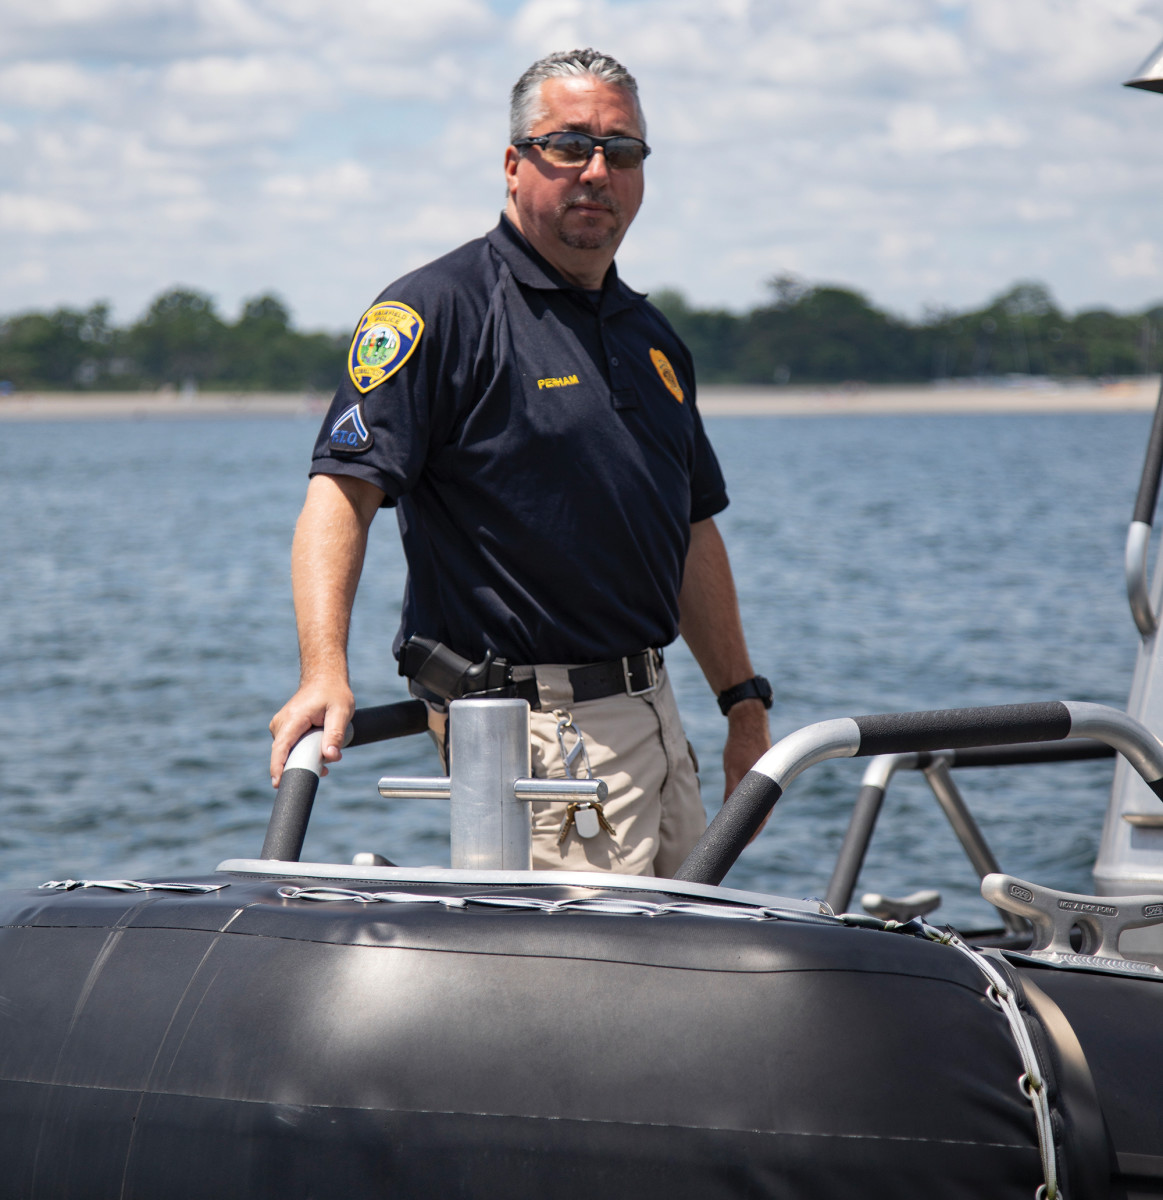 For 19-year veteran of the Fairfield Police Department Keith Perham, patrols are nothing new.